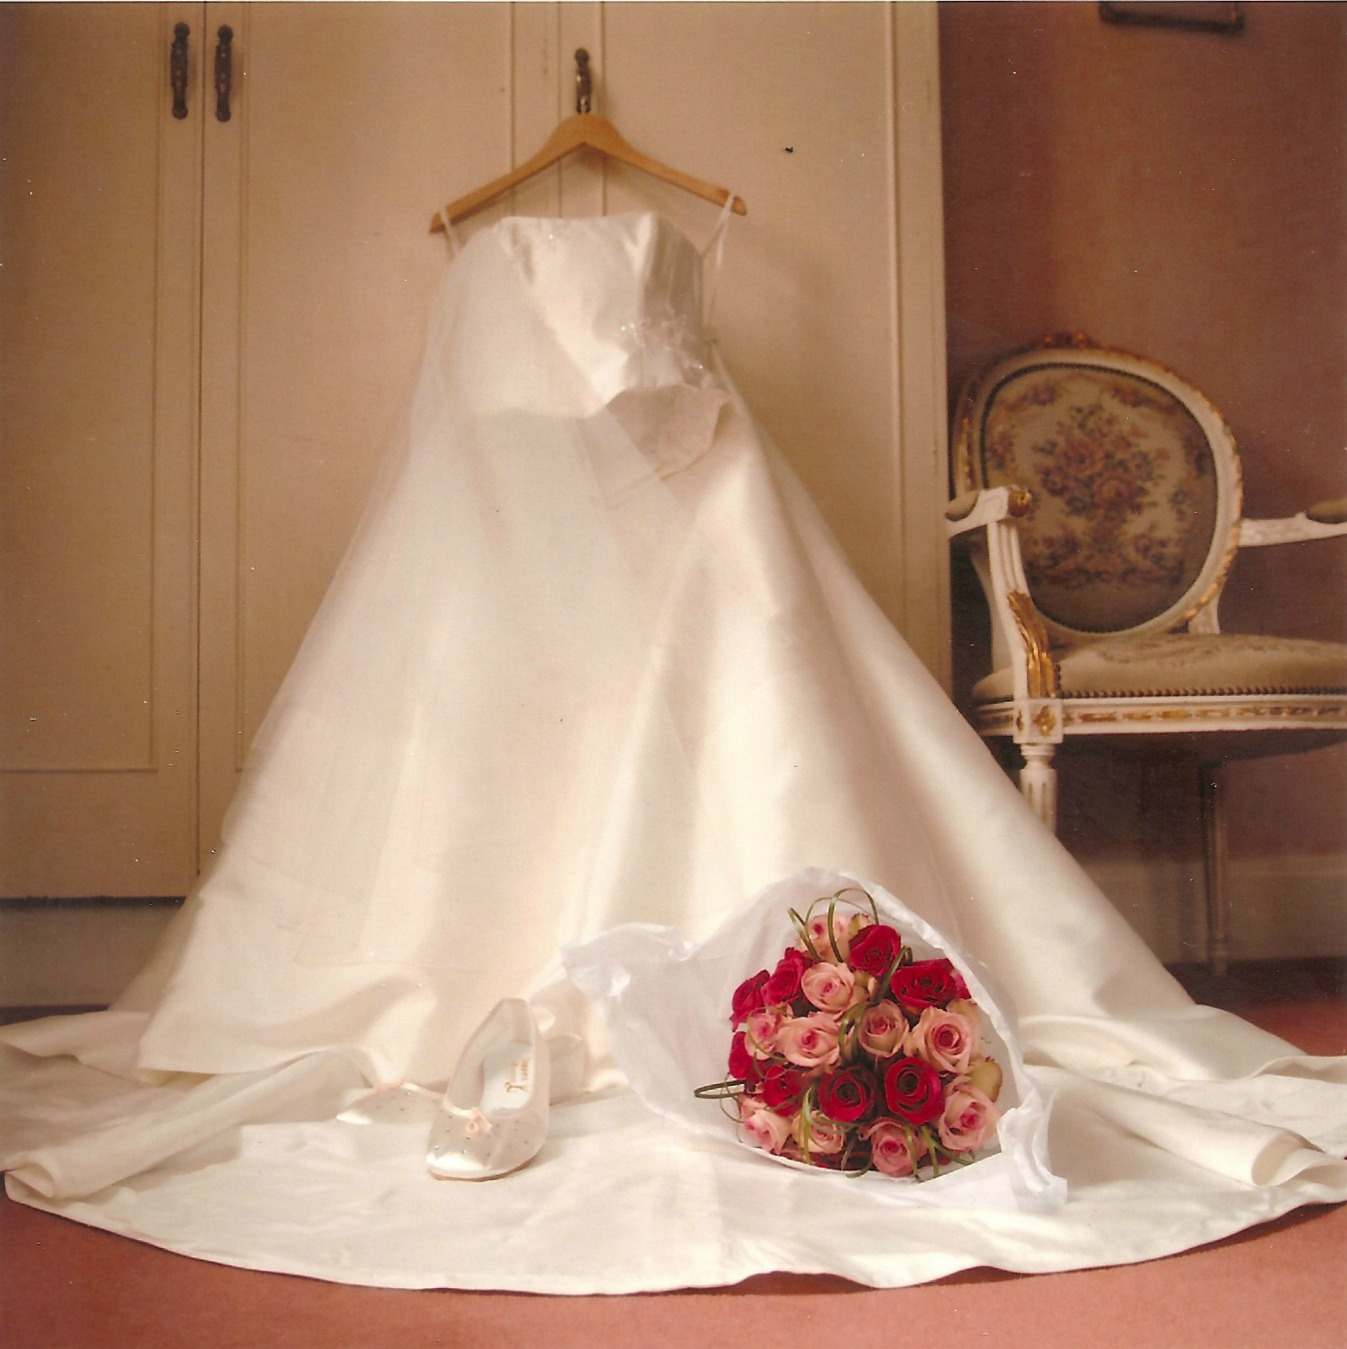 1-wedding dress